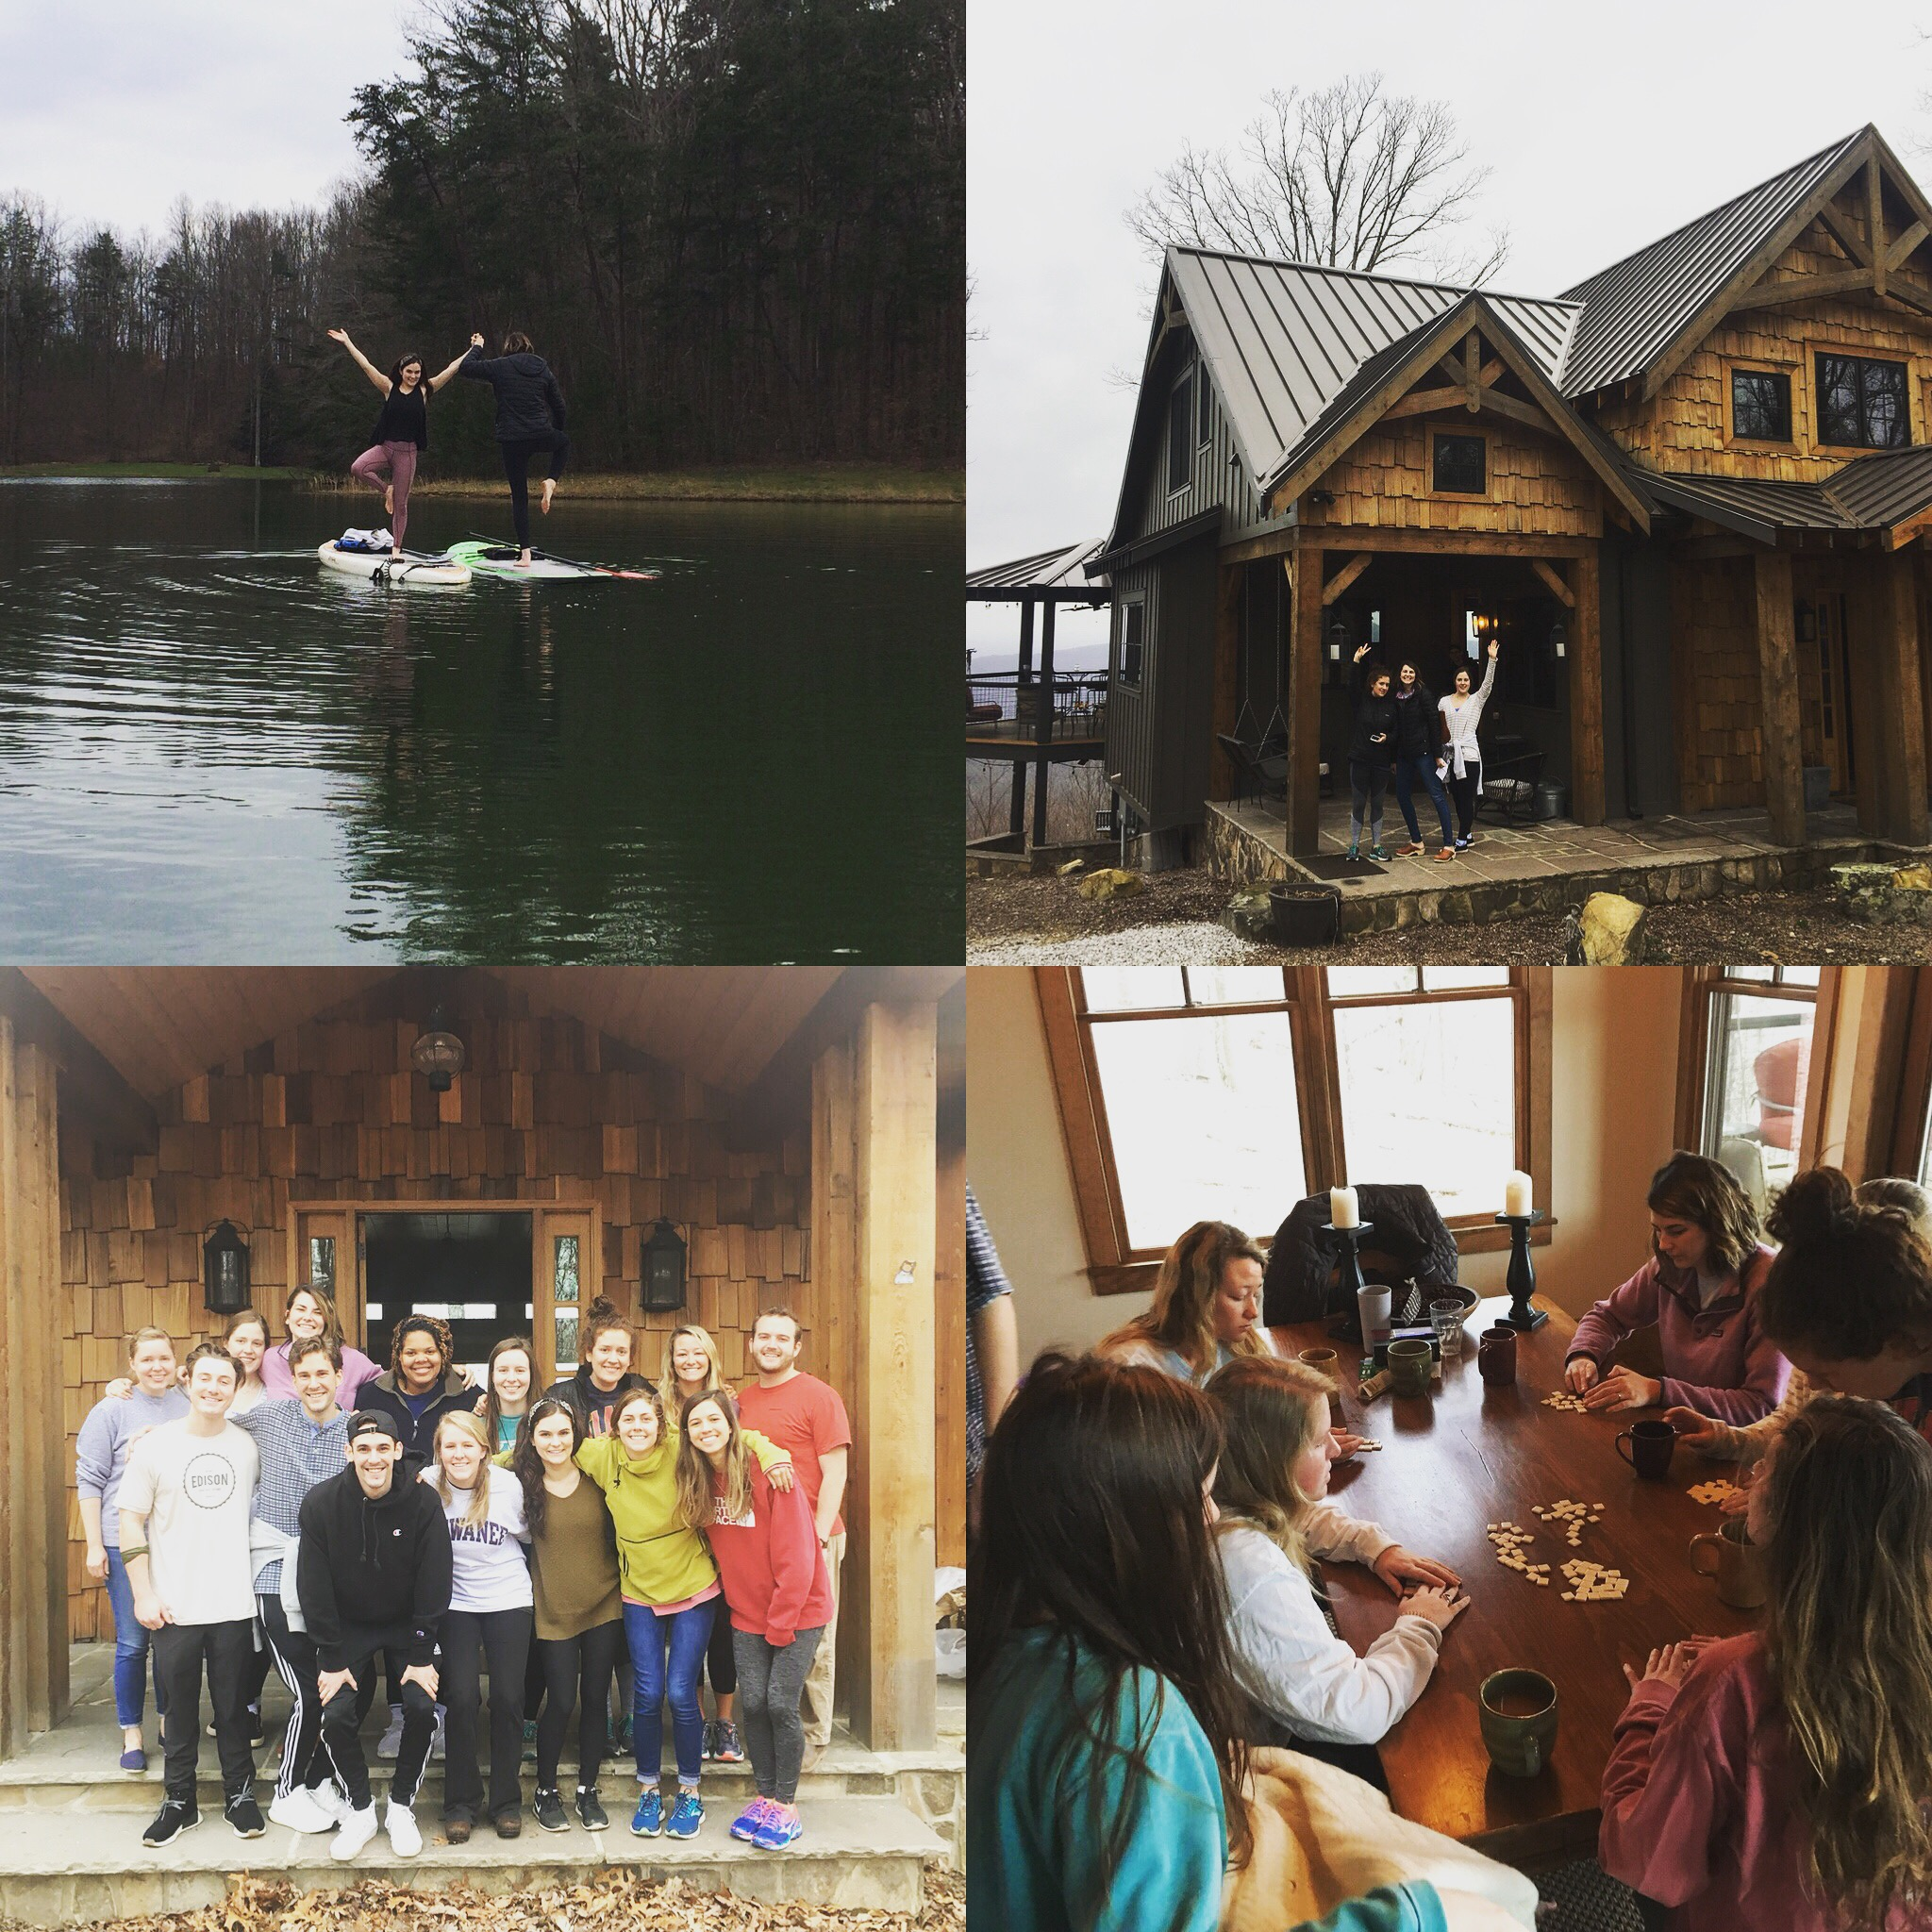 In March we went on a retreat focused on ending the program well together.